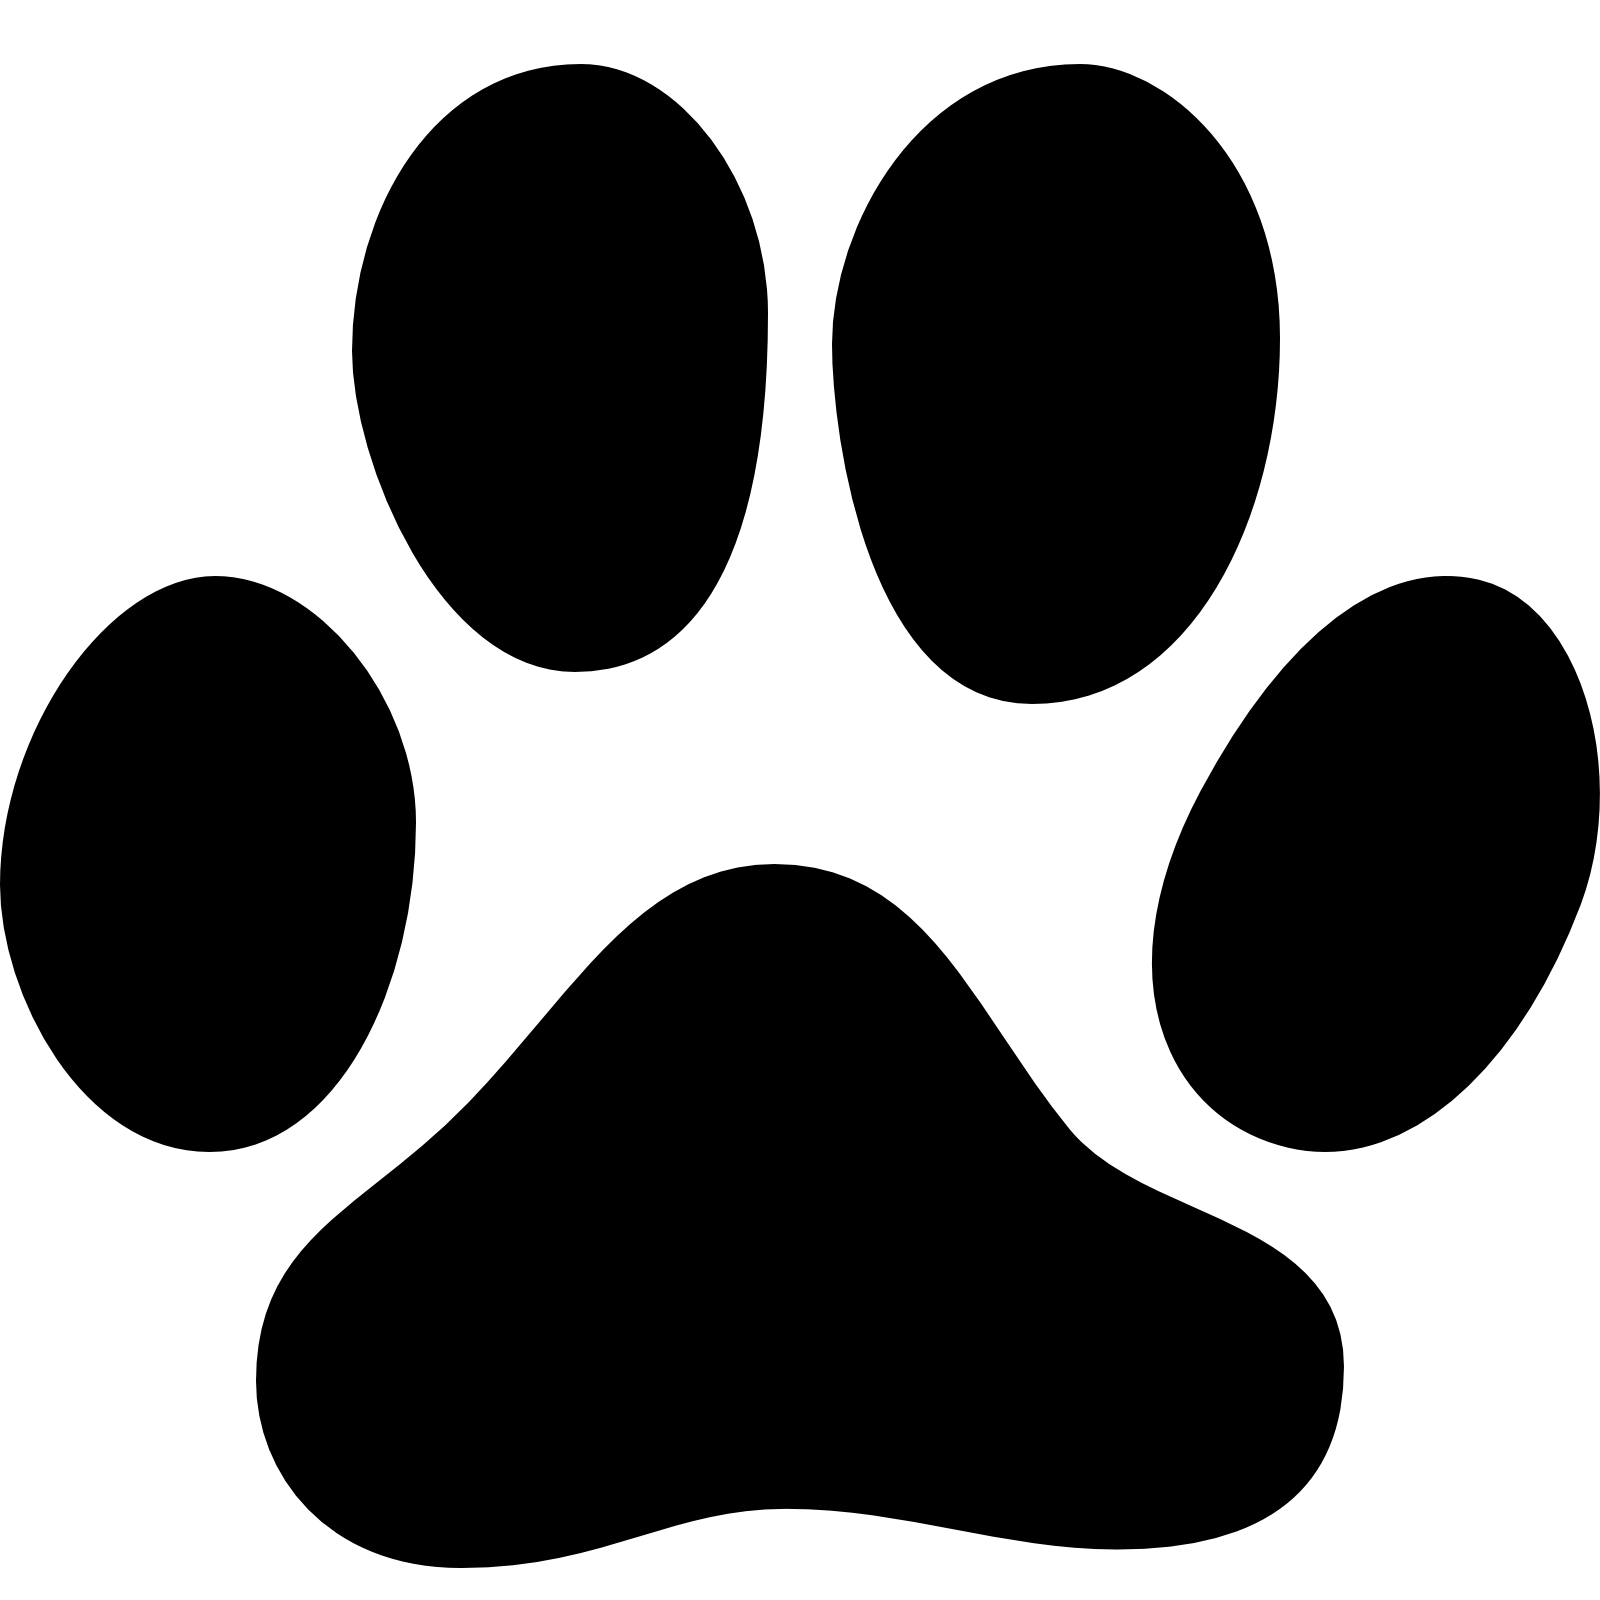 Dog Cat Paw Animal Track Footprint Footprint Png